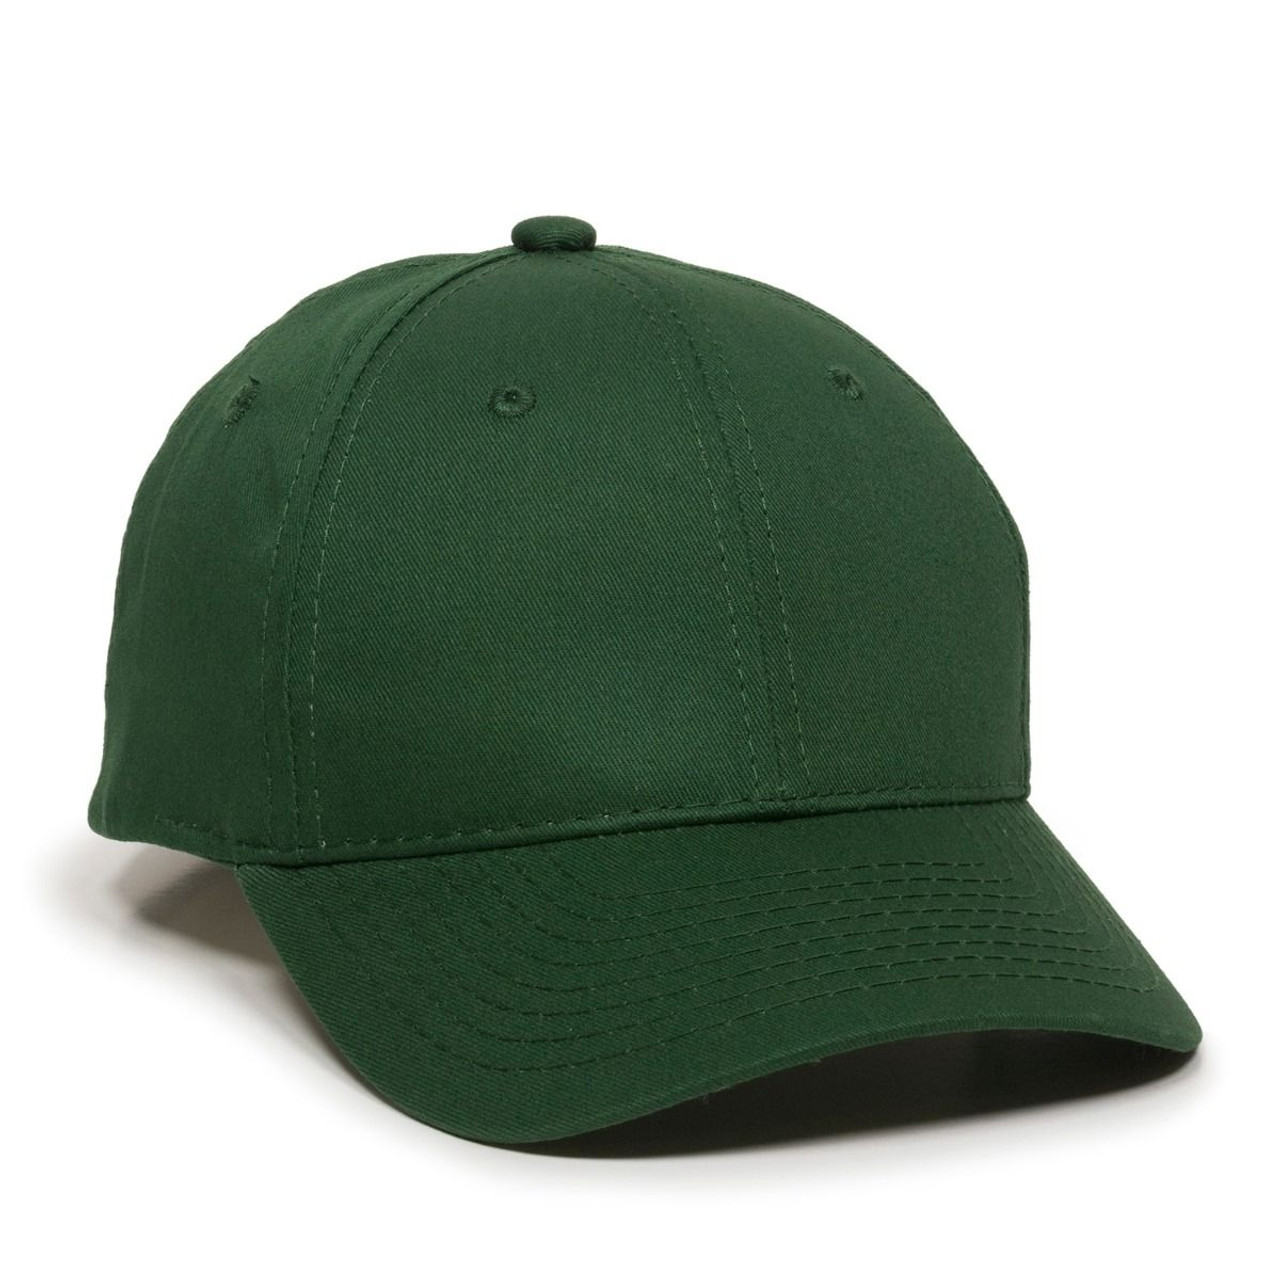 Embroidered Structured Twill Hats